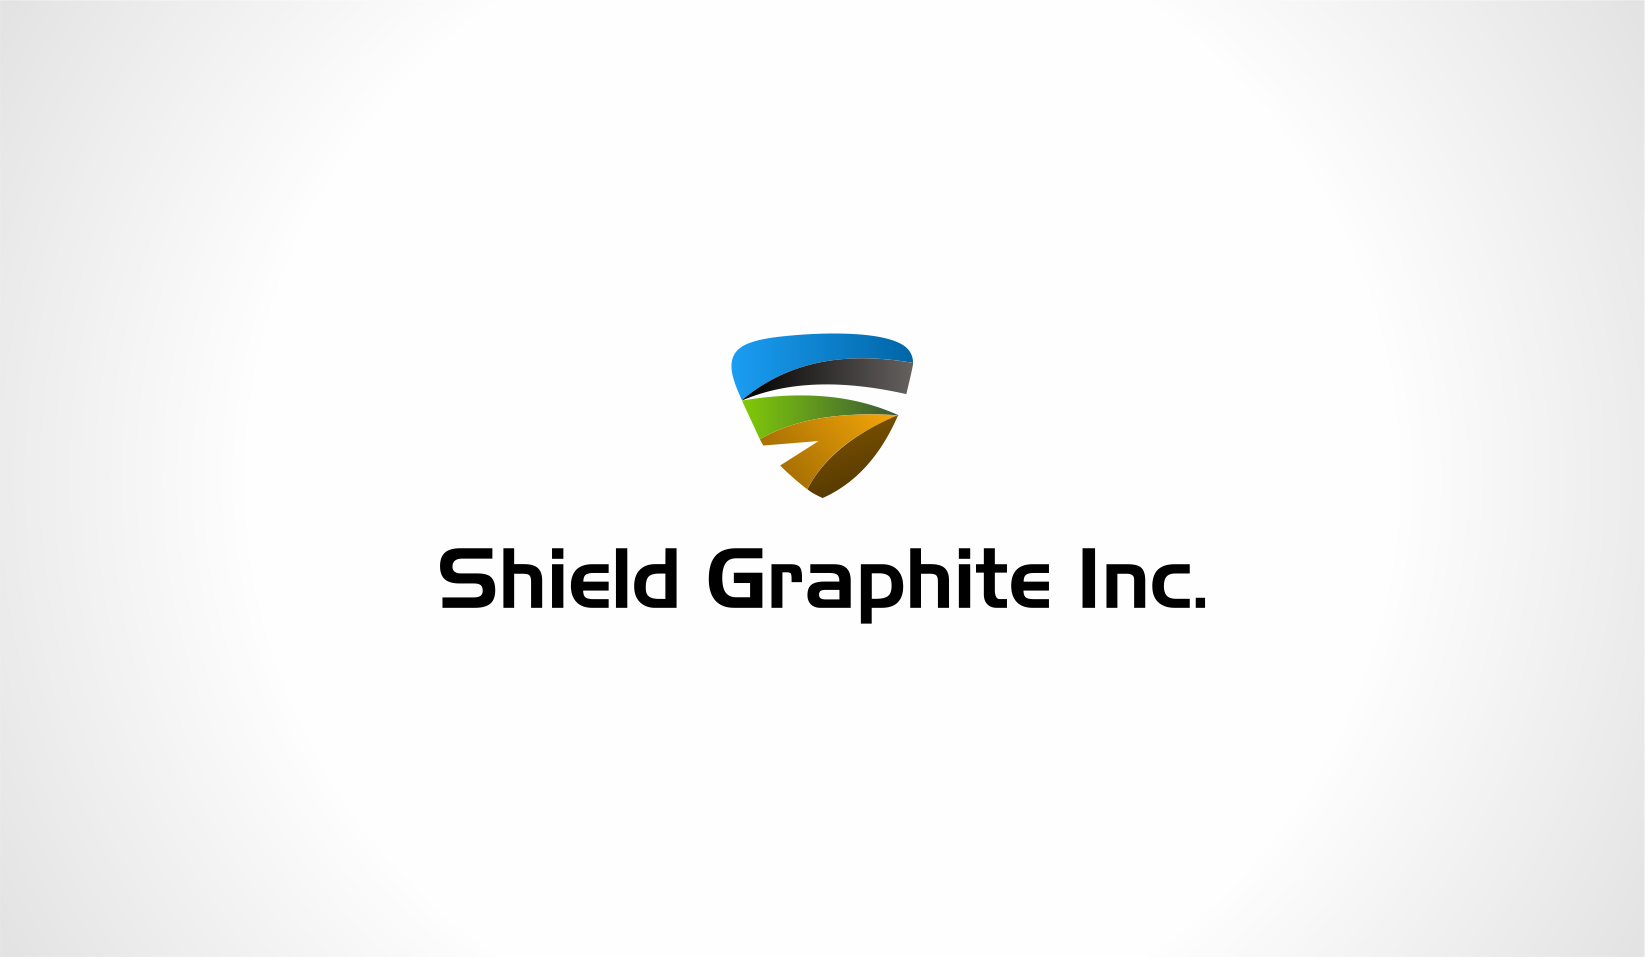 Logo Design by Muhammad Aslam - Entry No. 1 in the Logo Design Contest Imaginative Logo Design for Shield Graphite Inc..